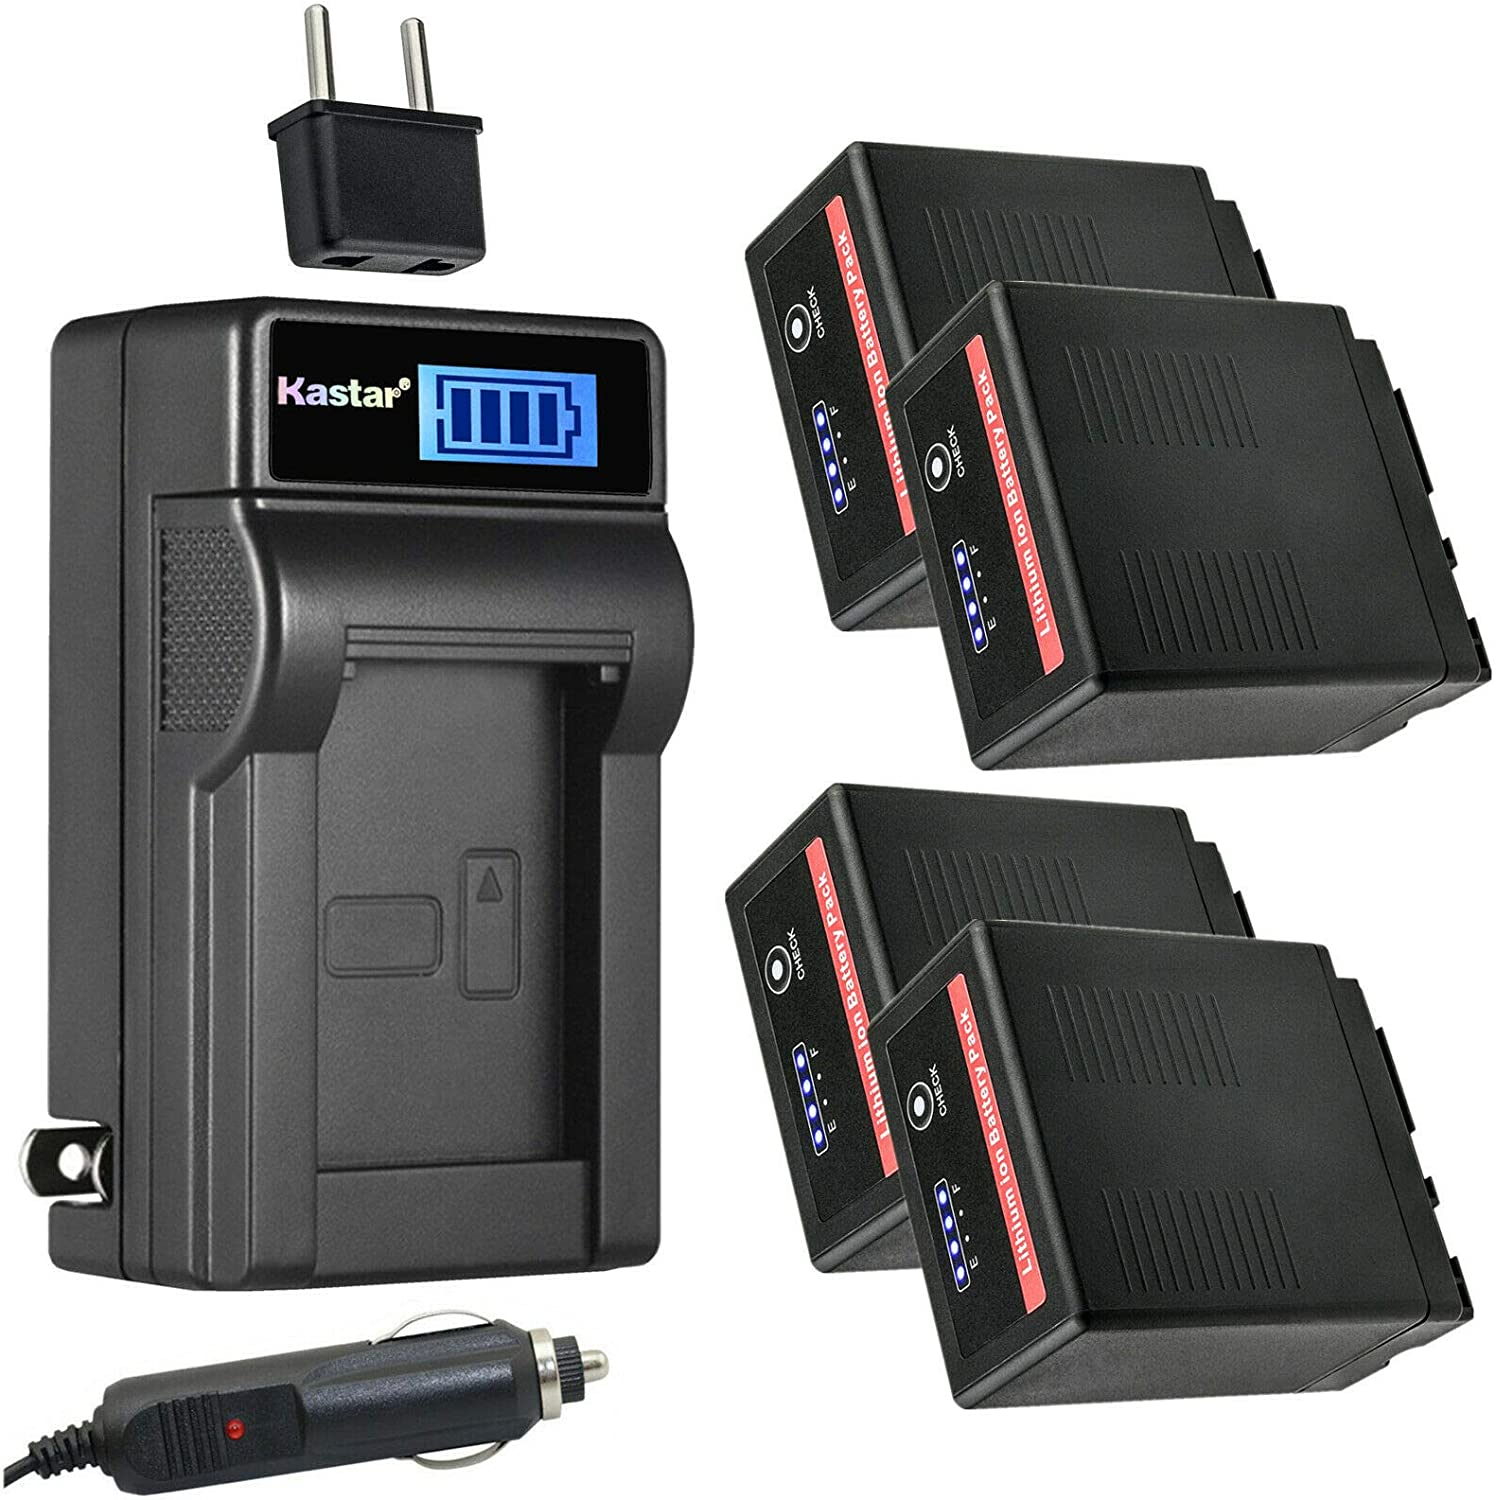 Kastar Directly managed store 4-Pack VW-VBG6 Pro Regular store Battery and Charger Compatible AC LCD